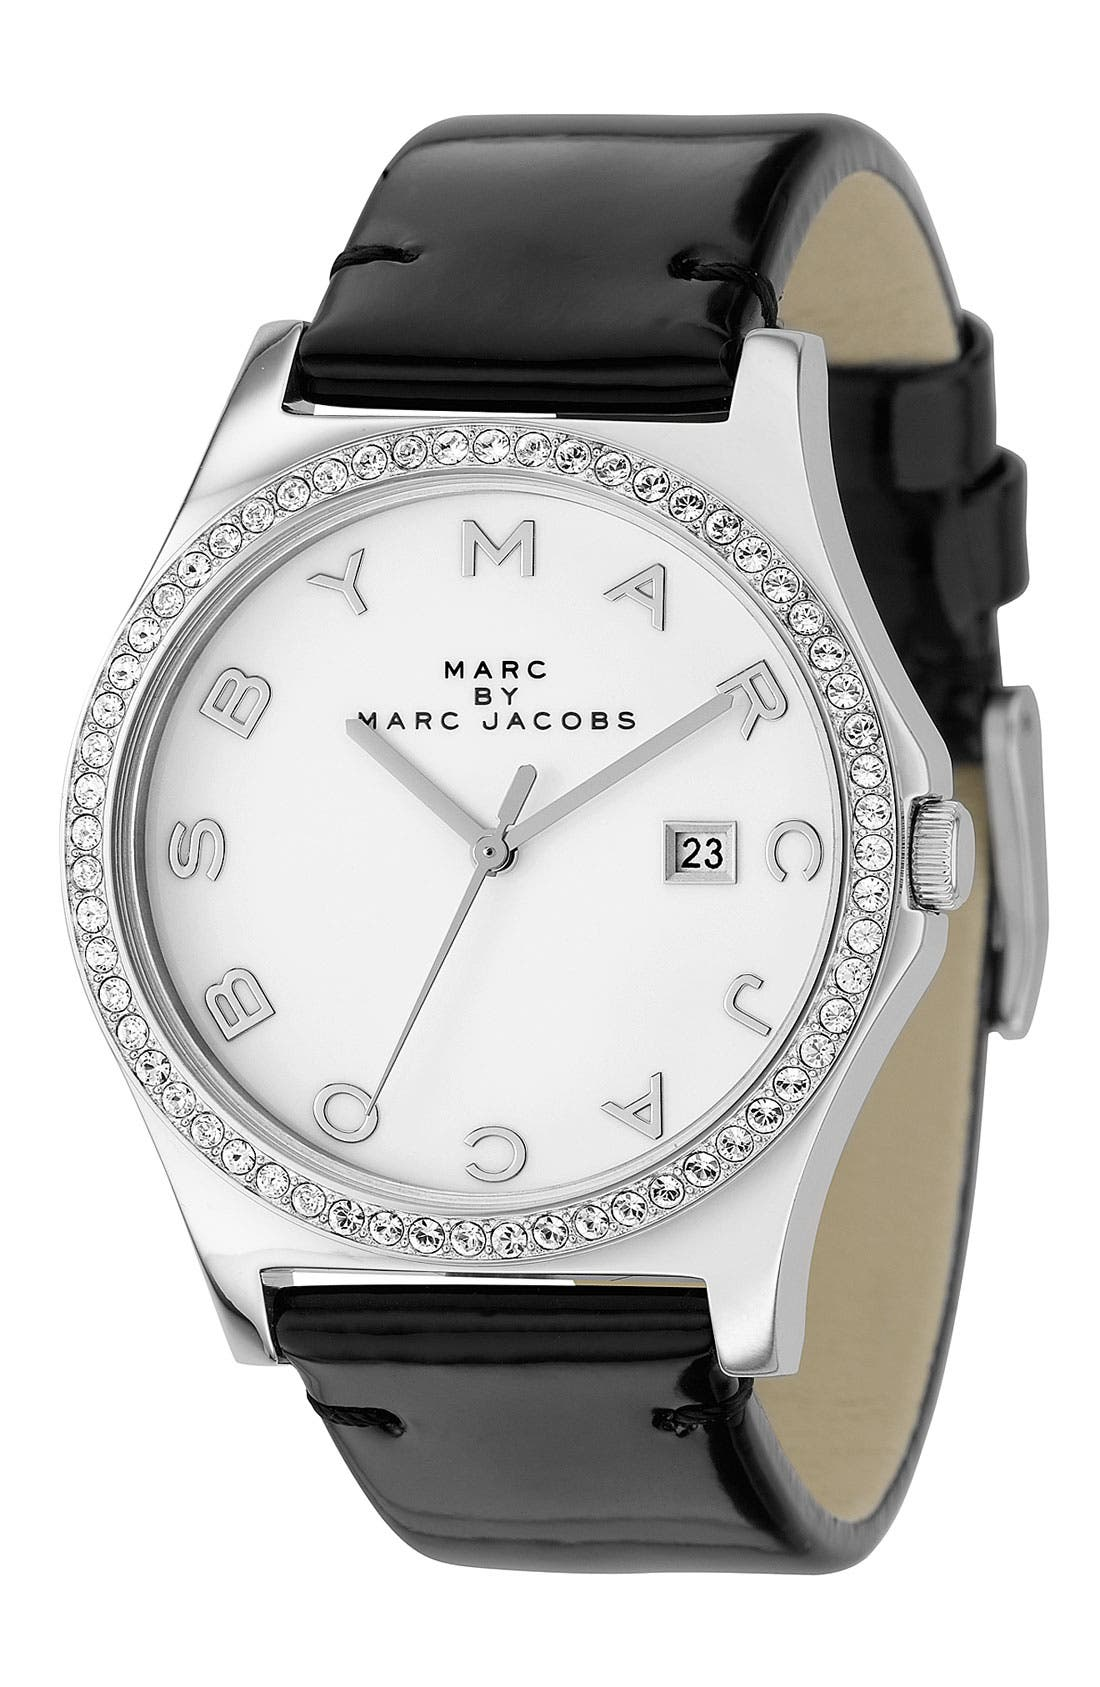 MARC JACOBS, 'Henry' Stainless Steel Watch, Main thumbnail 1, color, 001